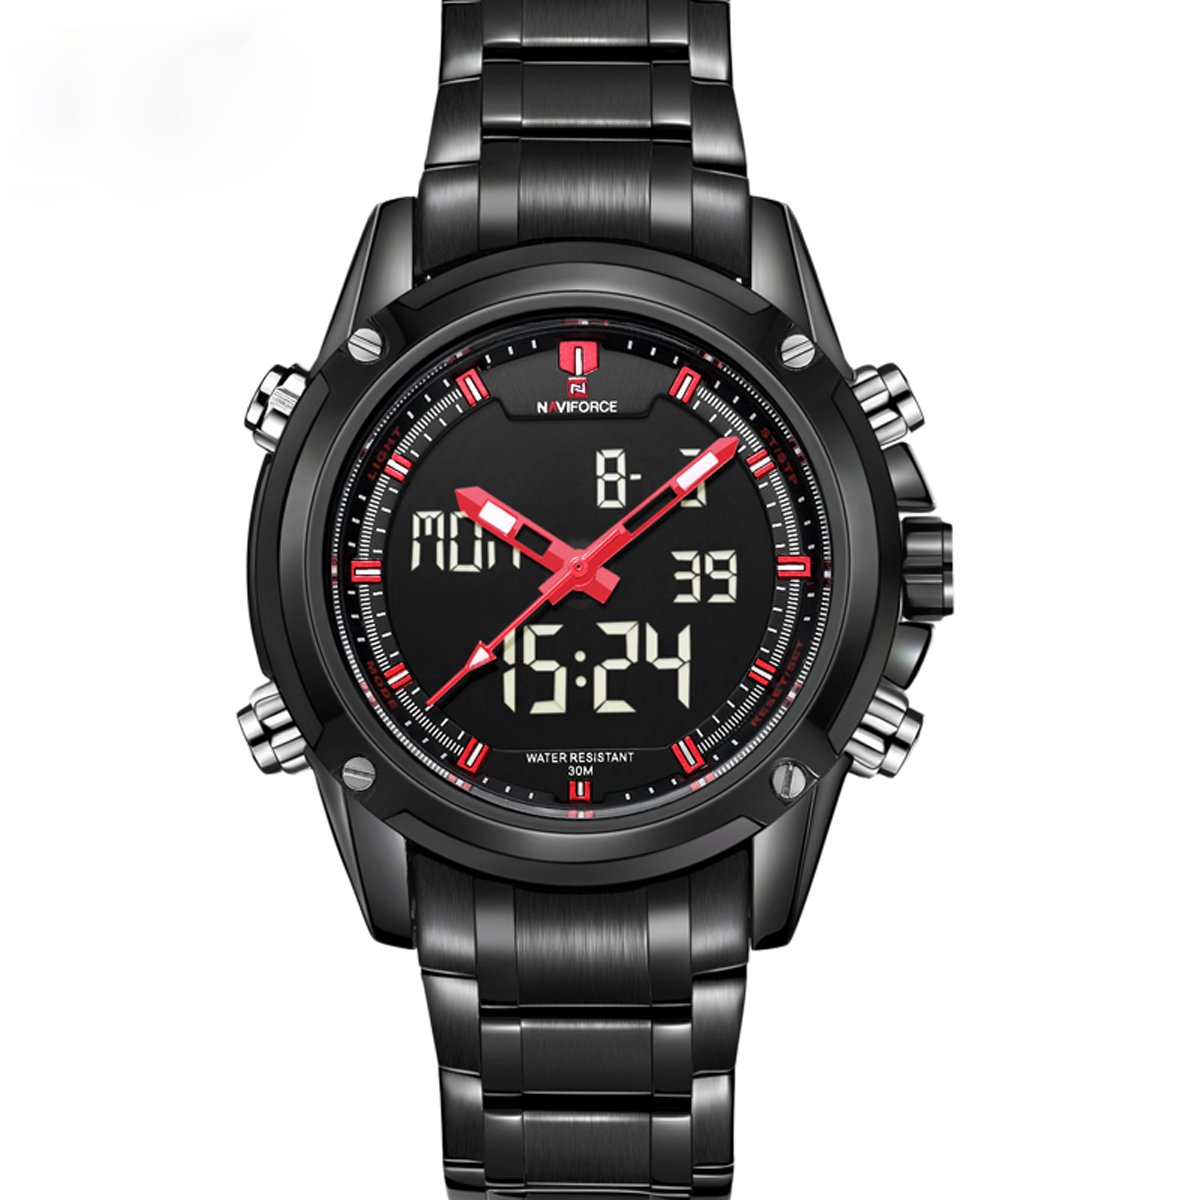 ea690ad93 Amazon.com: luxury NAVIFORCE Men's Analog Digital Waterproof Casual Army  Military Sports Watch (black red): Watches